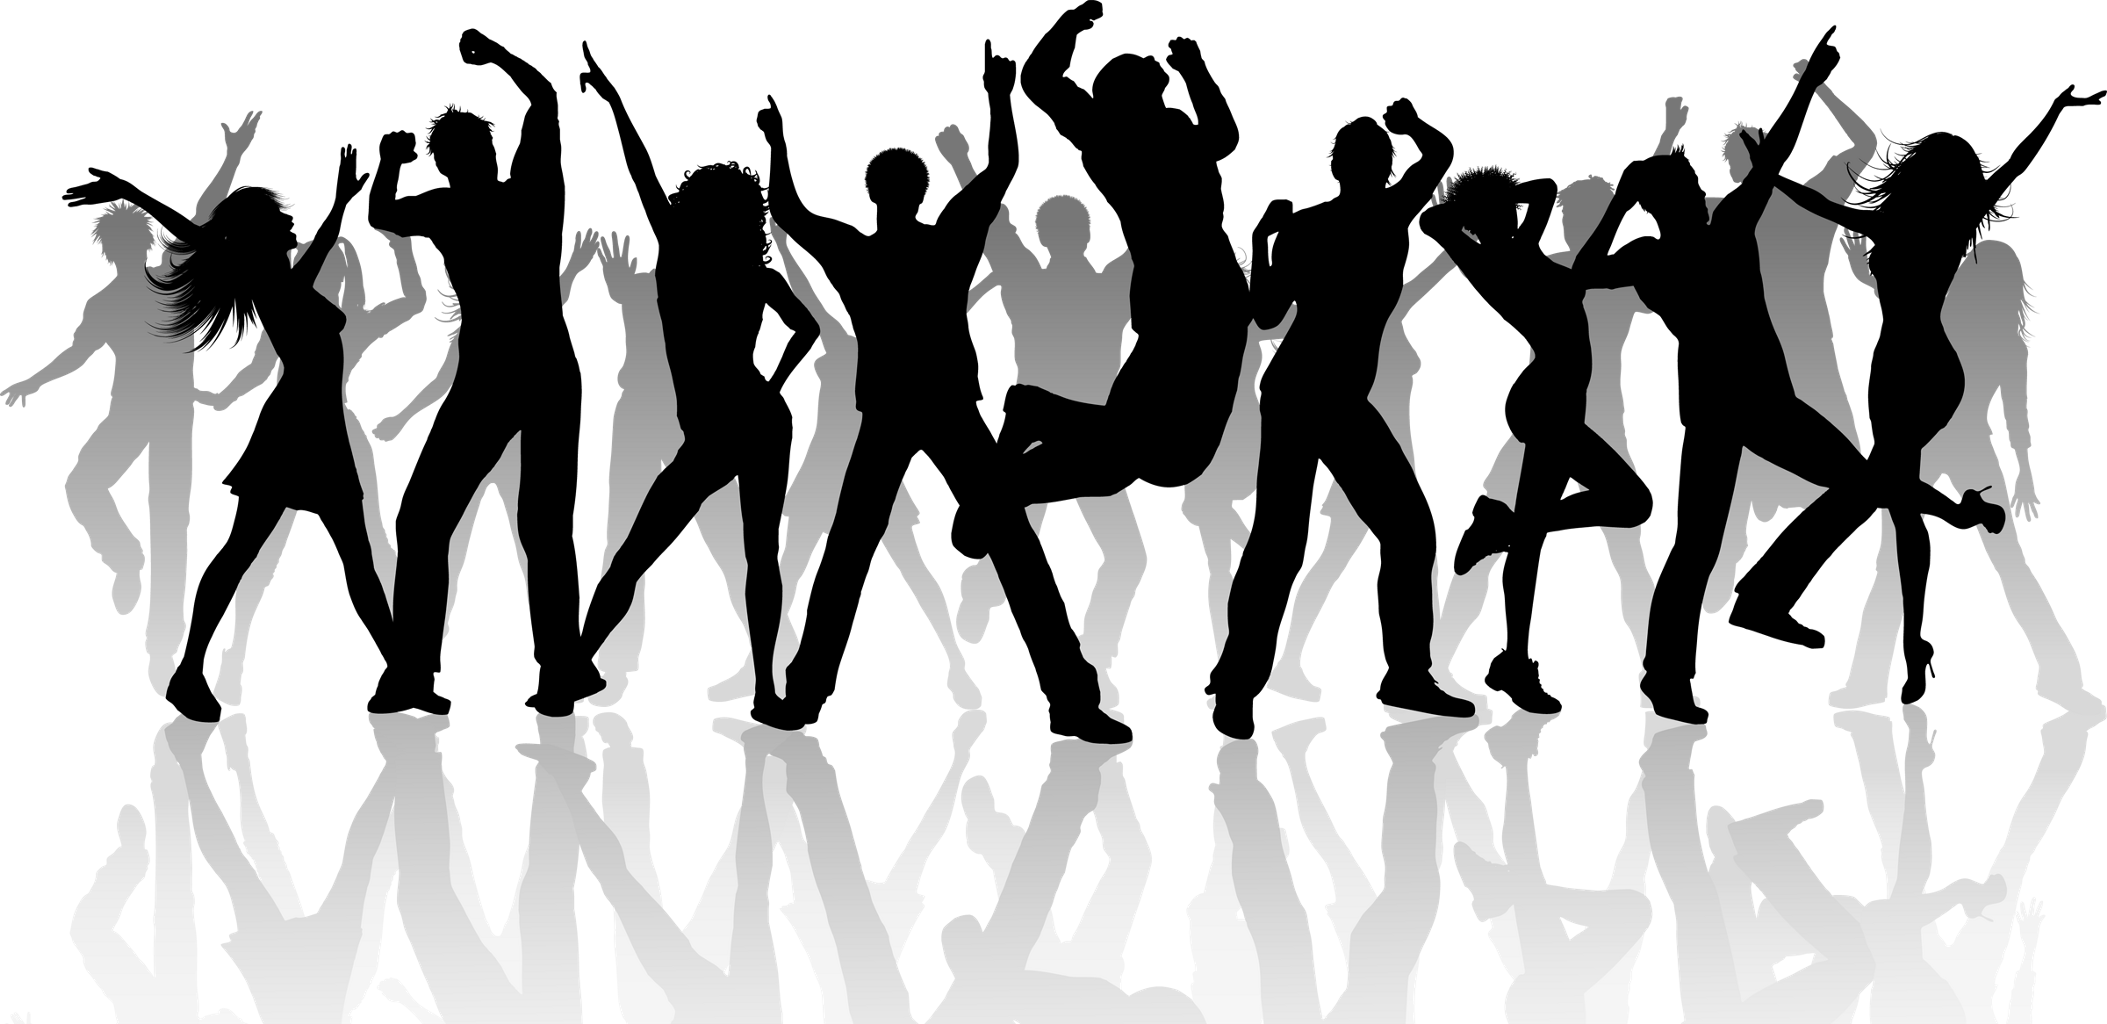 Crowd clipart shadow. Silhouette sticker by territales